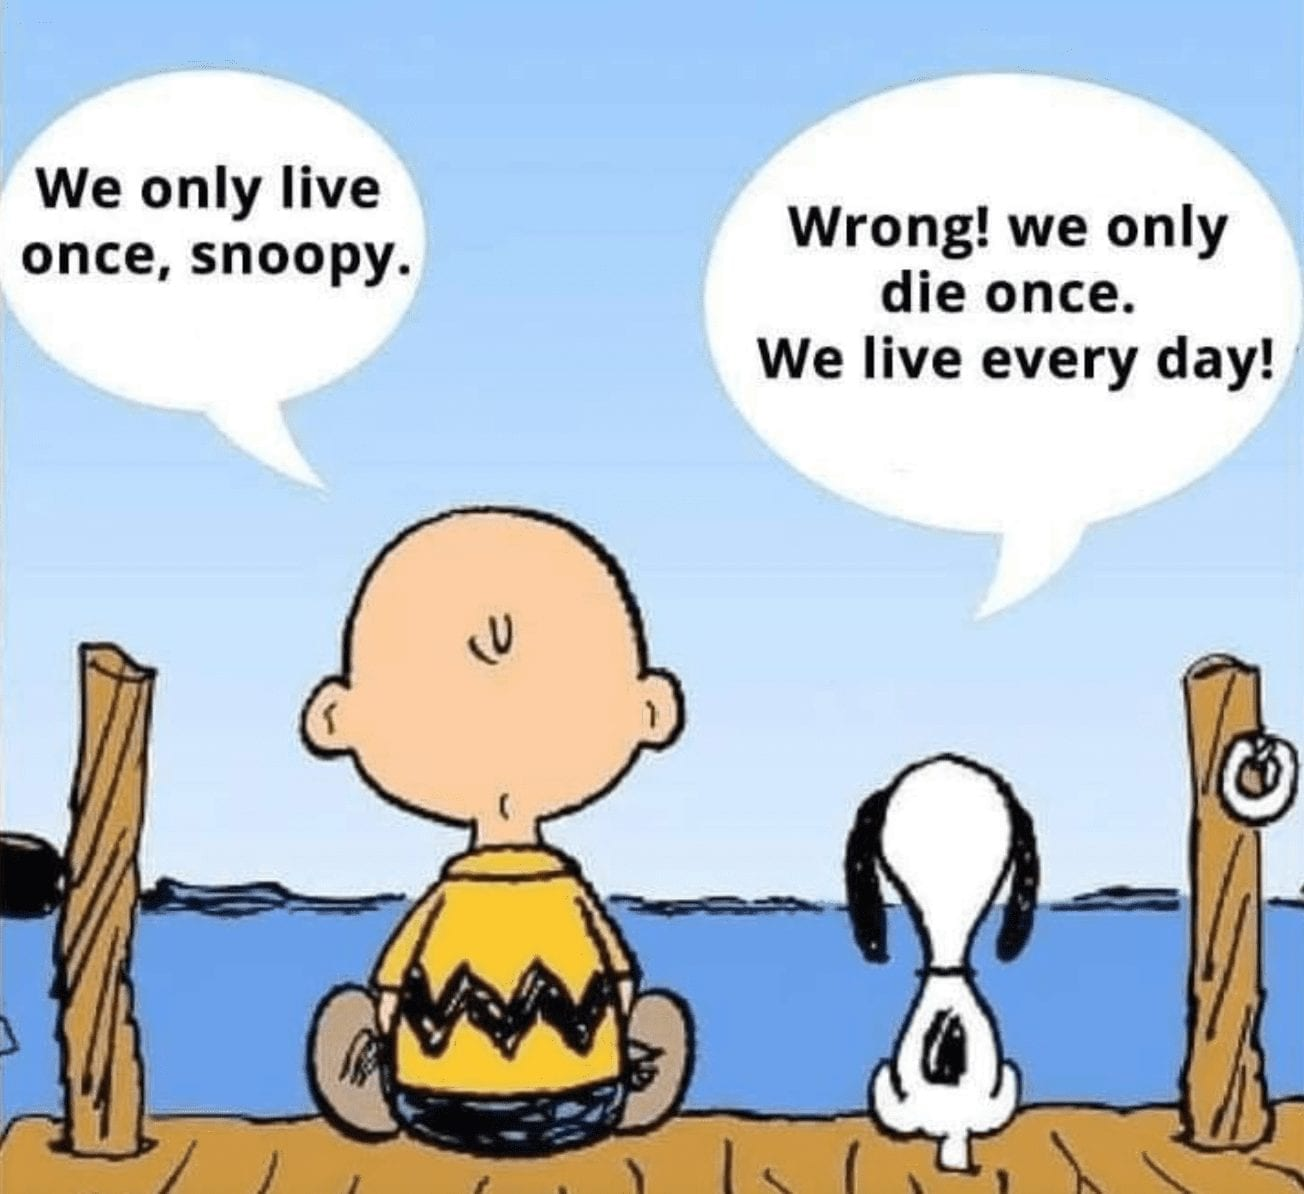 """charlie brown and snoopy sit facing water, with their backs to the viewer. A speech bubble from Charlie Brown says, """"We only live once, Snoopy."""" and Snoopy's speech bubble says, """"Wrong! We only die once. We live every day!"""""""